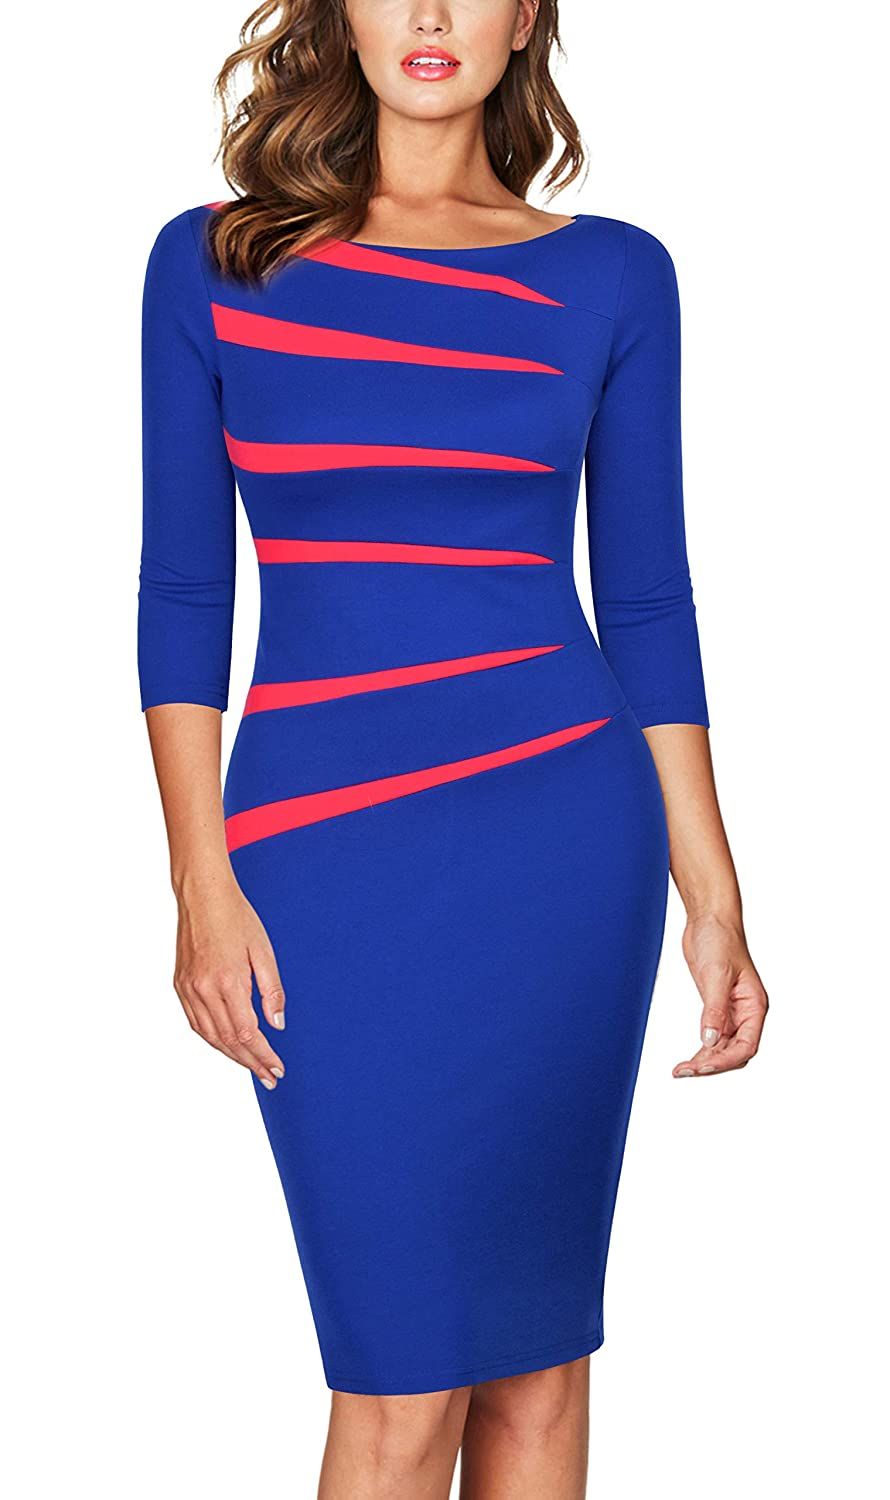 006b0fc3b19f9b FORTRIC Women Slim Stitching Bodycon Business Wear to Work Party Pencil  Dress at Amazon Women s Clothing store